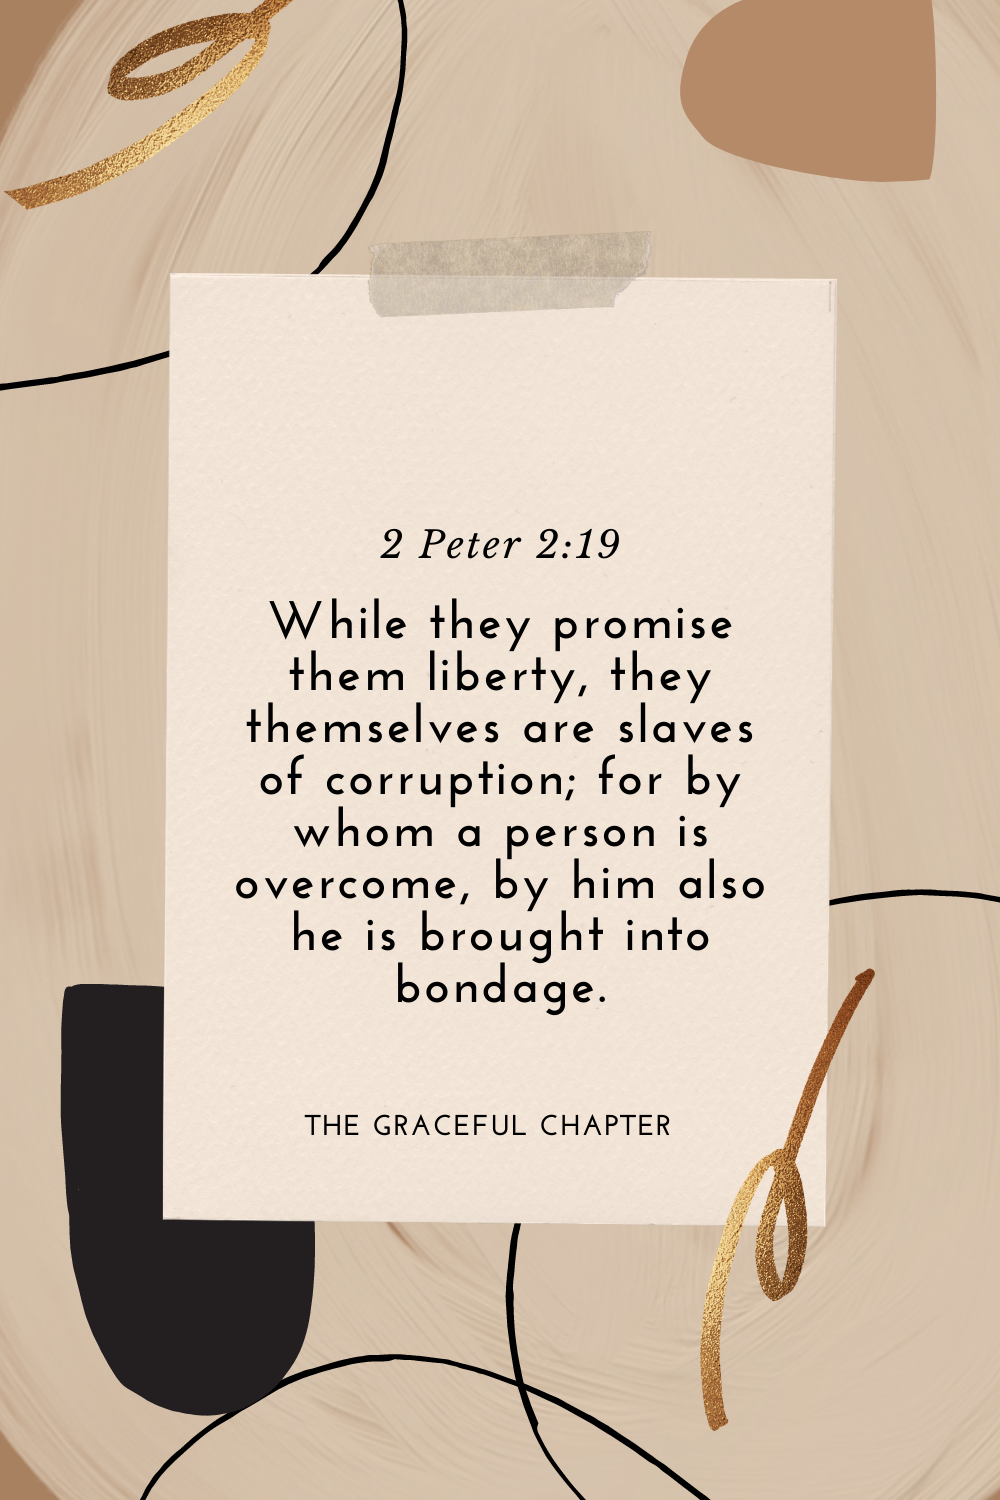 While they promise them liberty, they themselves are slaves of corruption; for by whom a person is overcome, by him also he is brought into bondage. 2 Peter 2:19